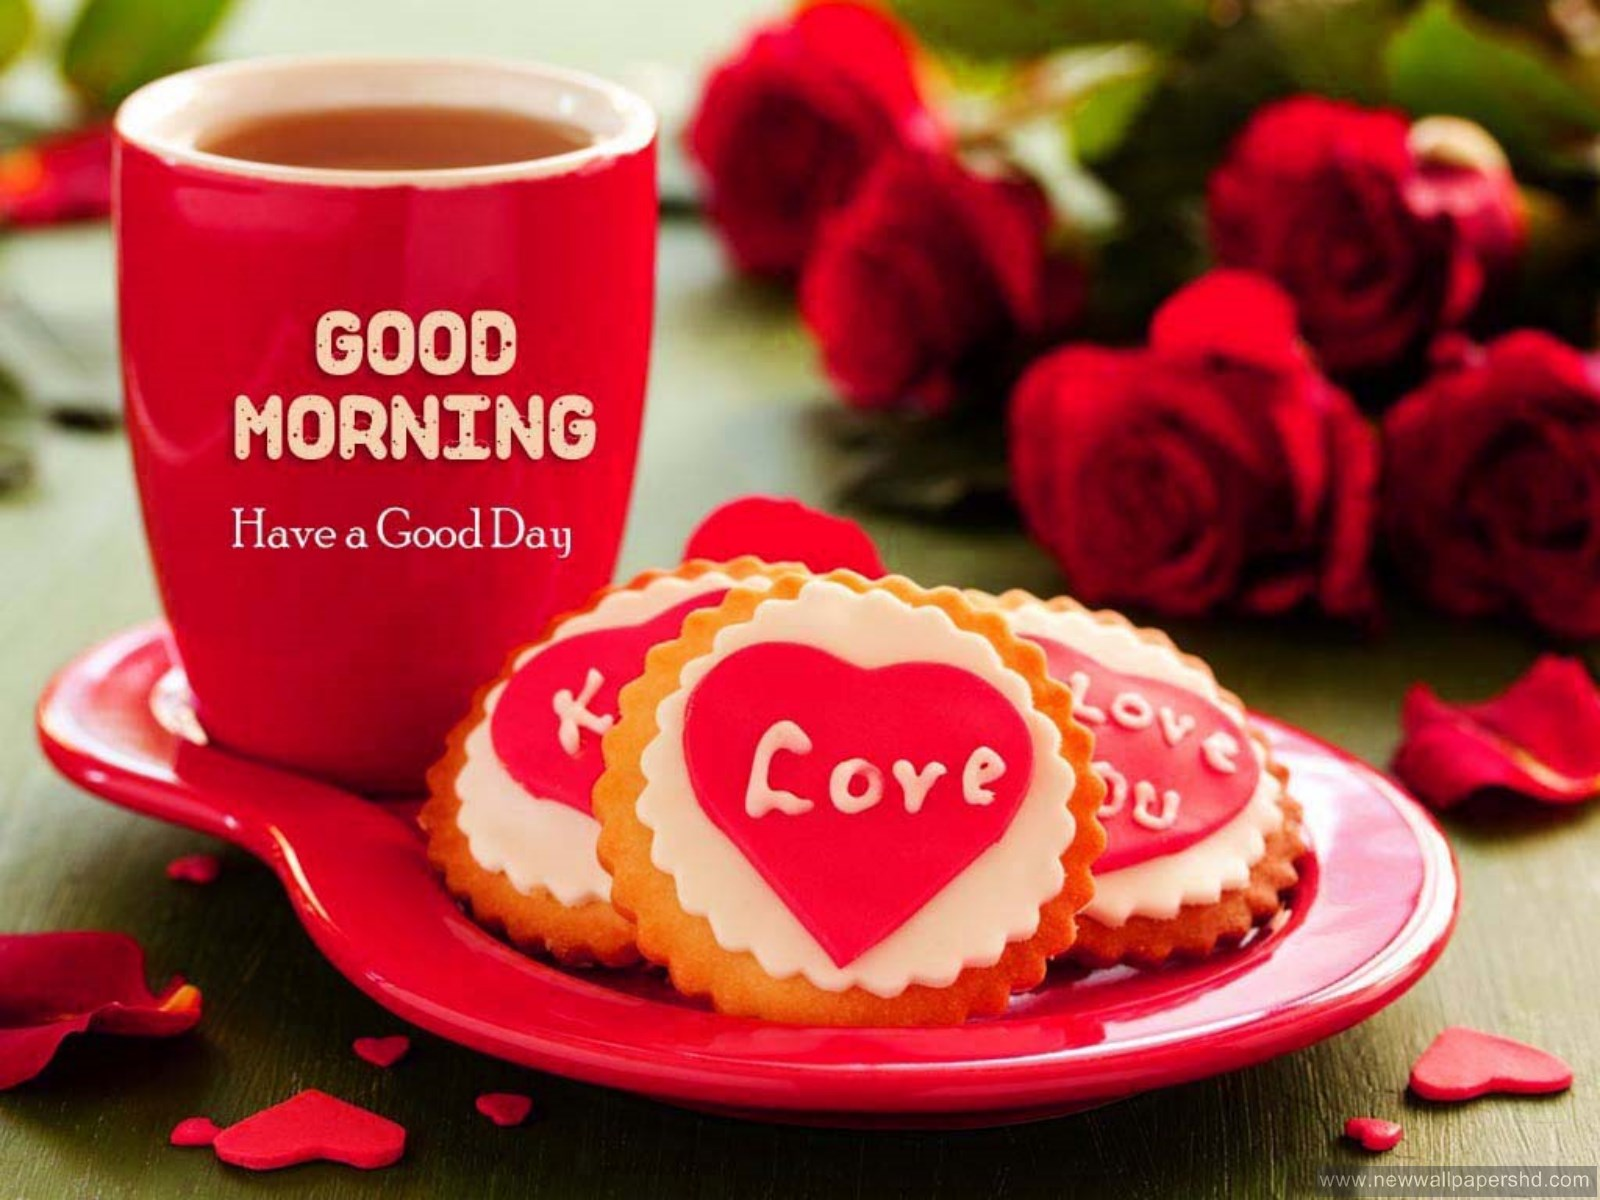 Morning Wallpapers Good Orning Wallpapers Images Hot 16085 Hd